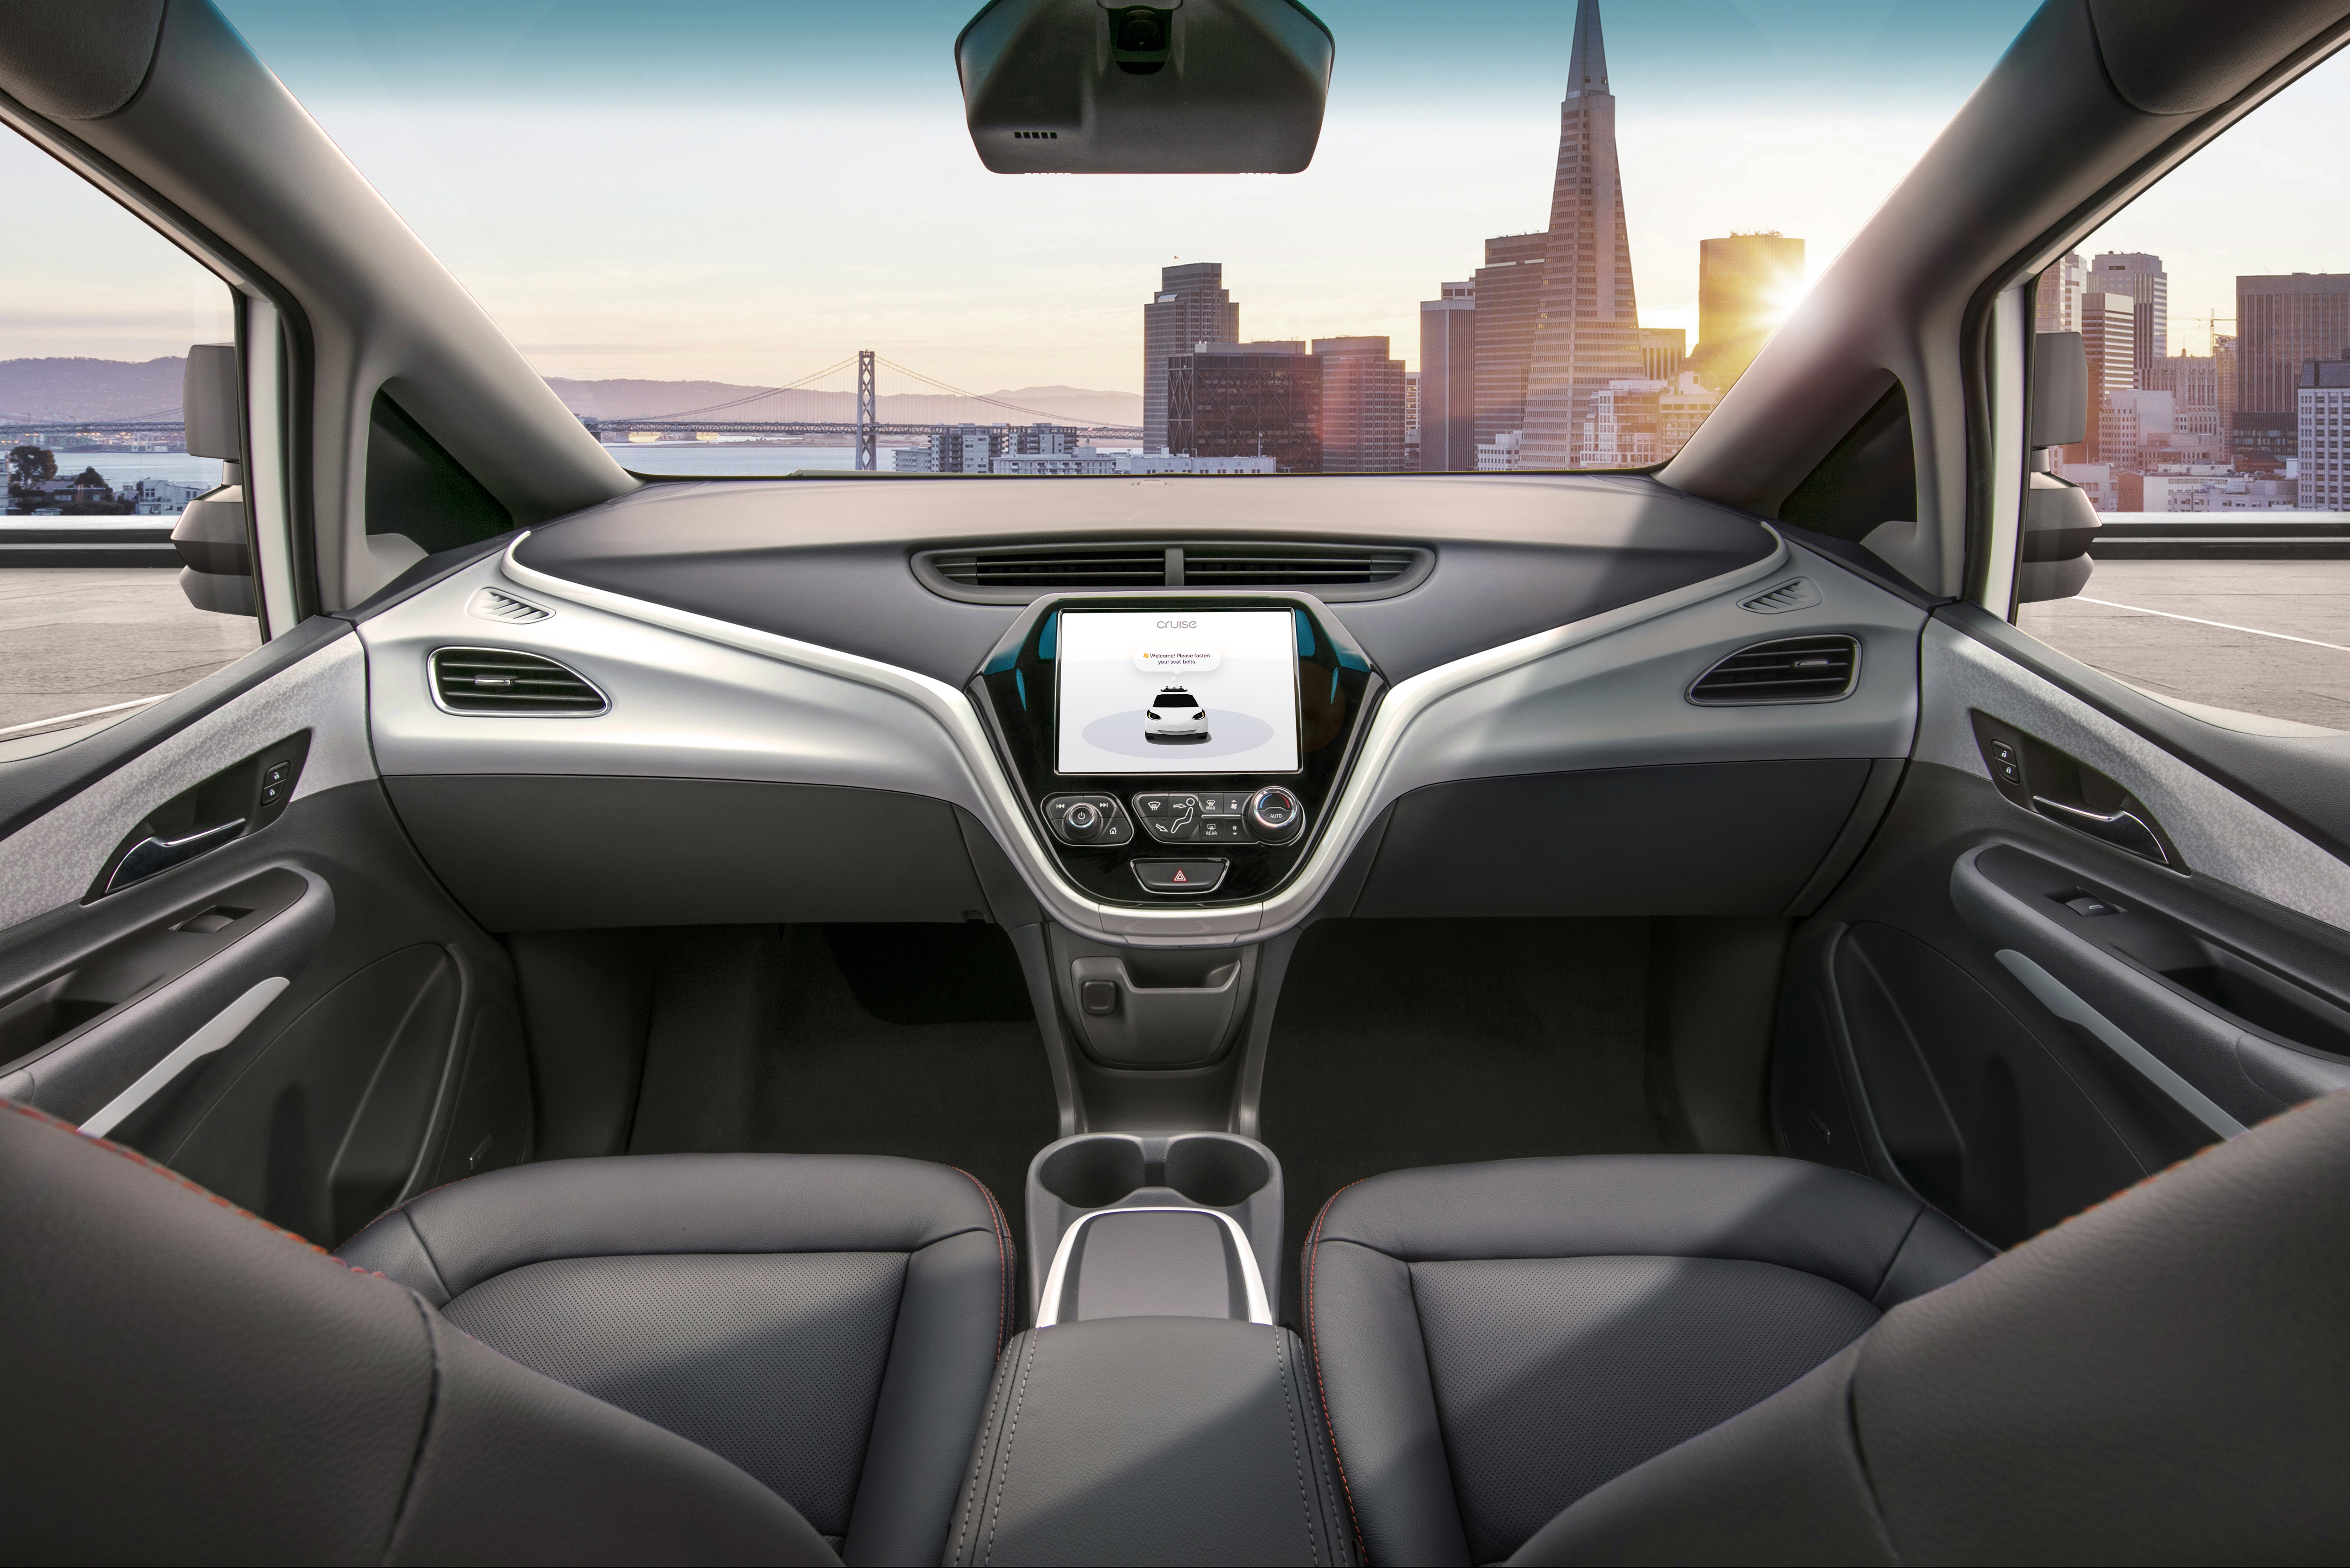 GM hopes to start manufacturing a car with no steering wheel, gas, or brake pedals in 2019.